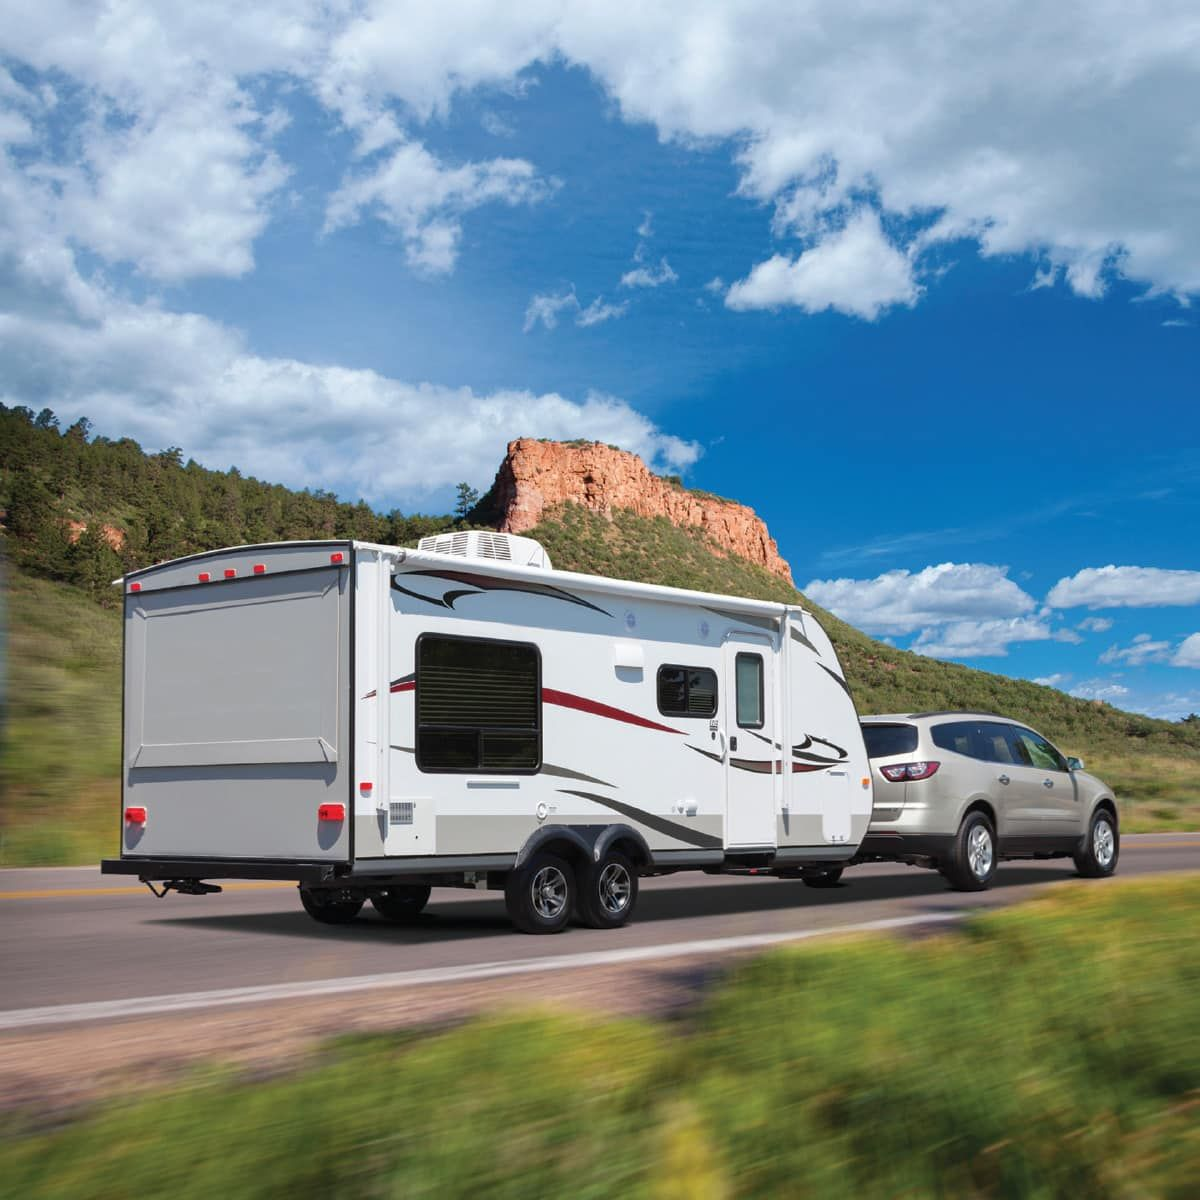 The Truth About Butt Wipes And Rv Holding Tanks